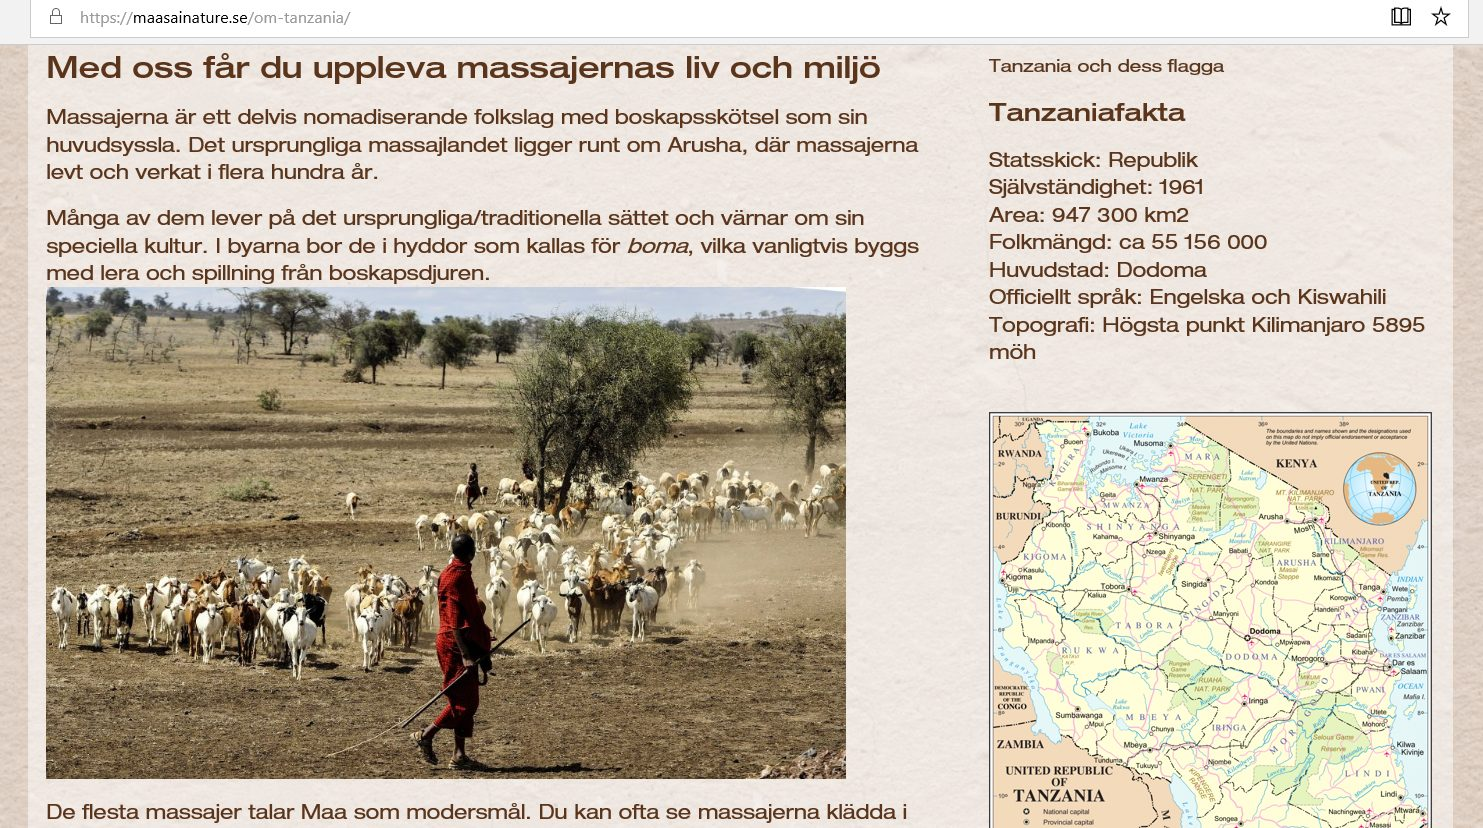 maasai nature referenscase